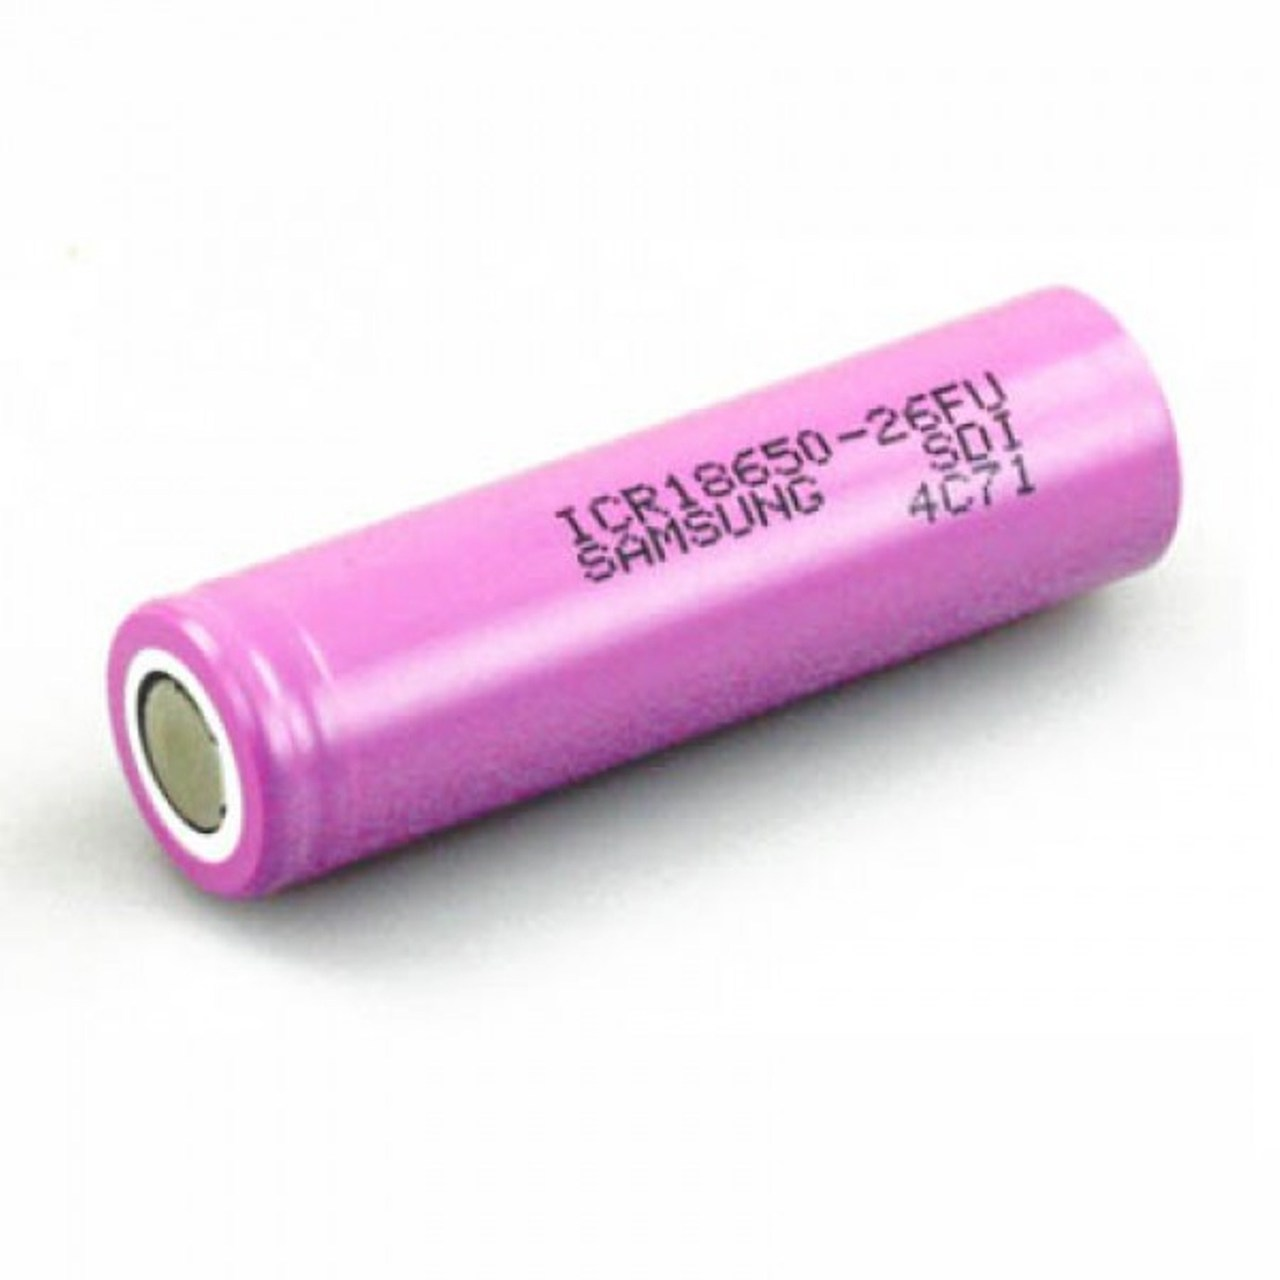 18650 2600mah Li-Ion Rechargeable Battery + FREE SHIPPING